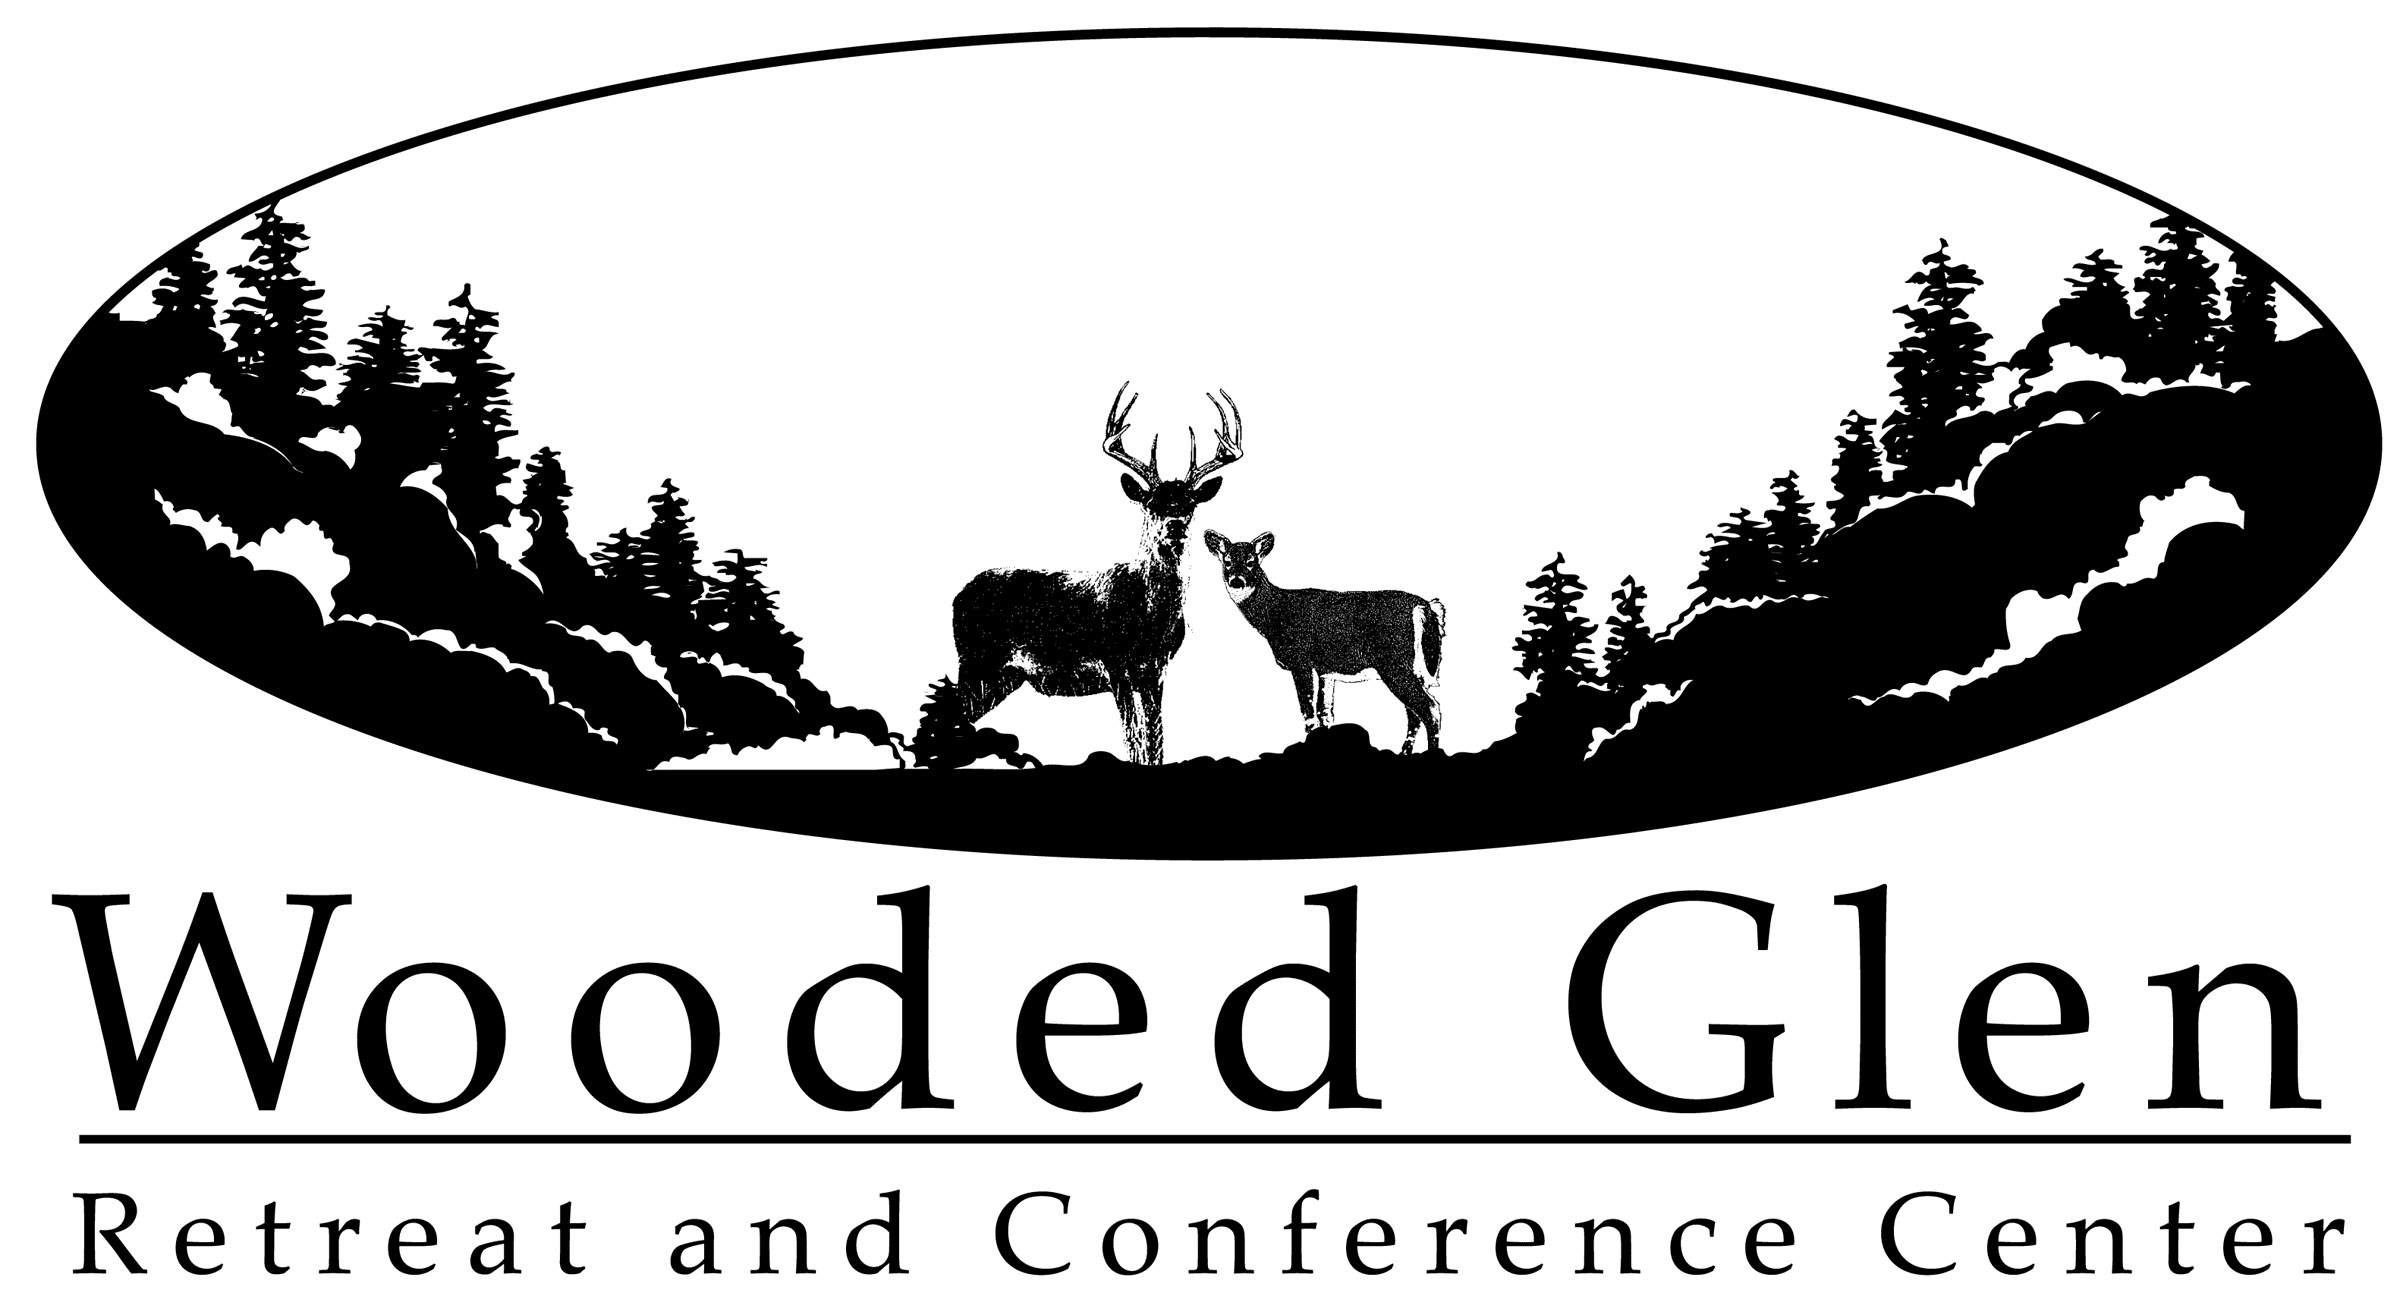 Wooded Glen Retreat and Conference Center